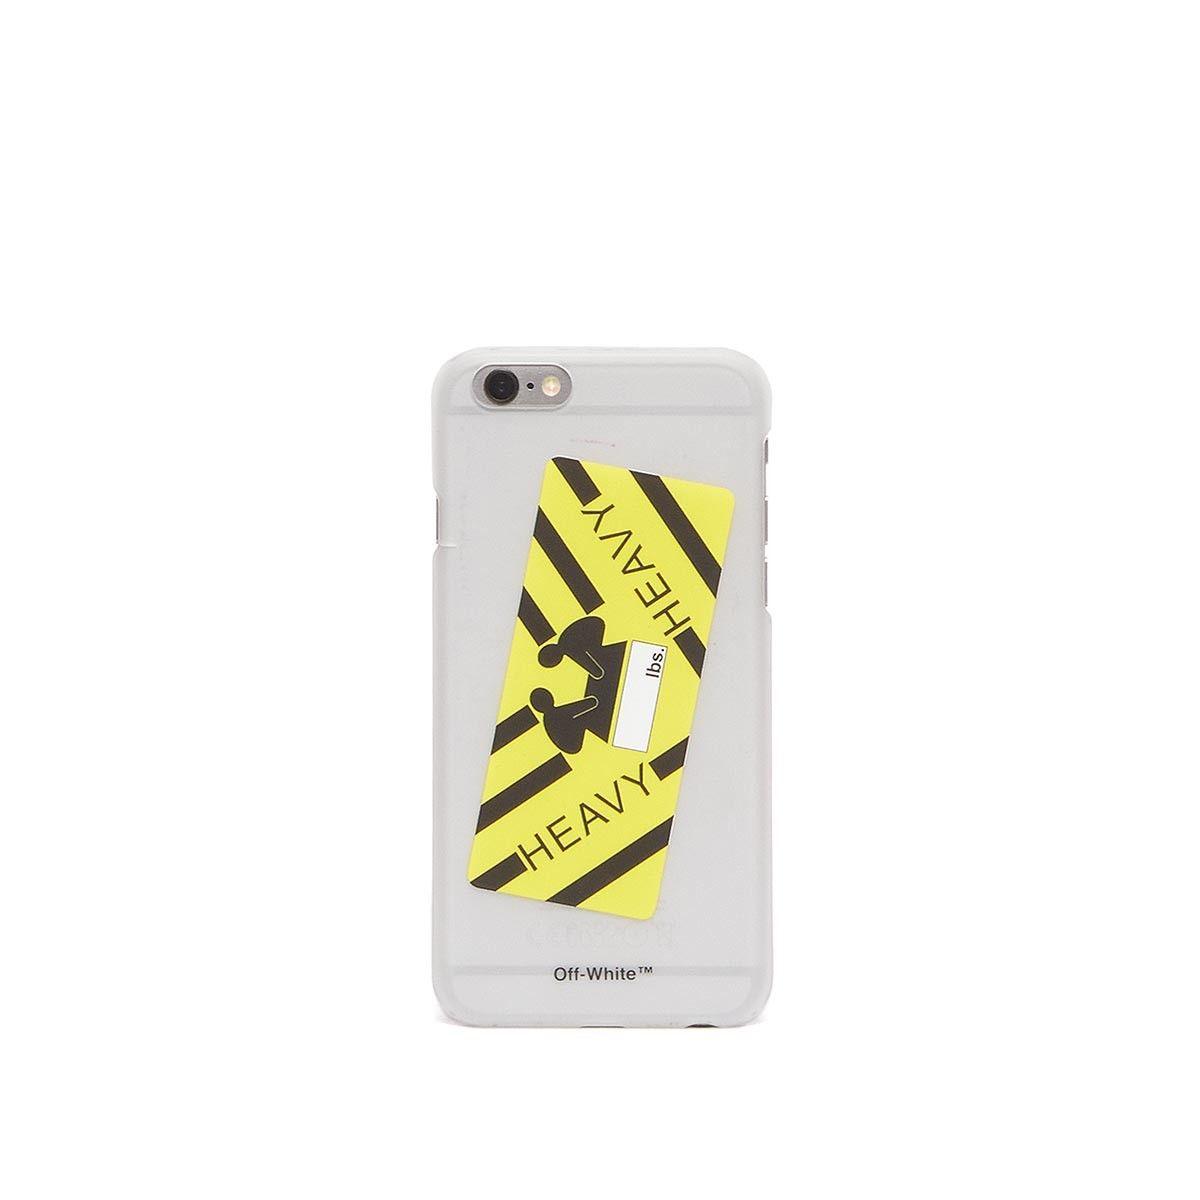 0ffe2e935d6c iPhone 6 Heavy sticker case from the S S2017 Off-White c o Virgil Abloh  collection